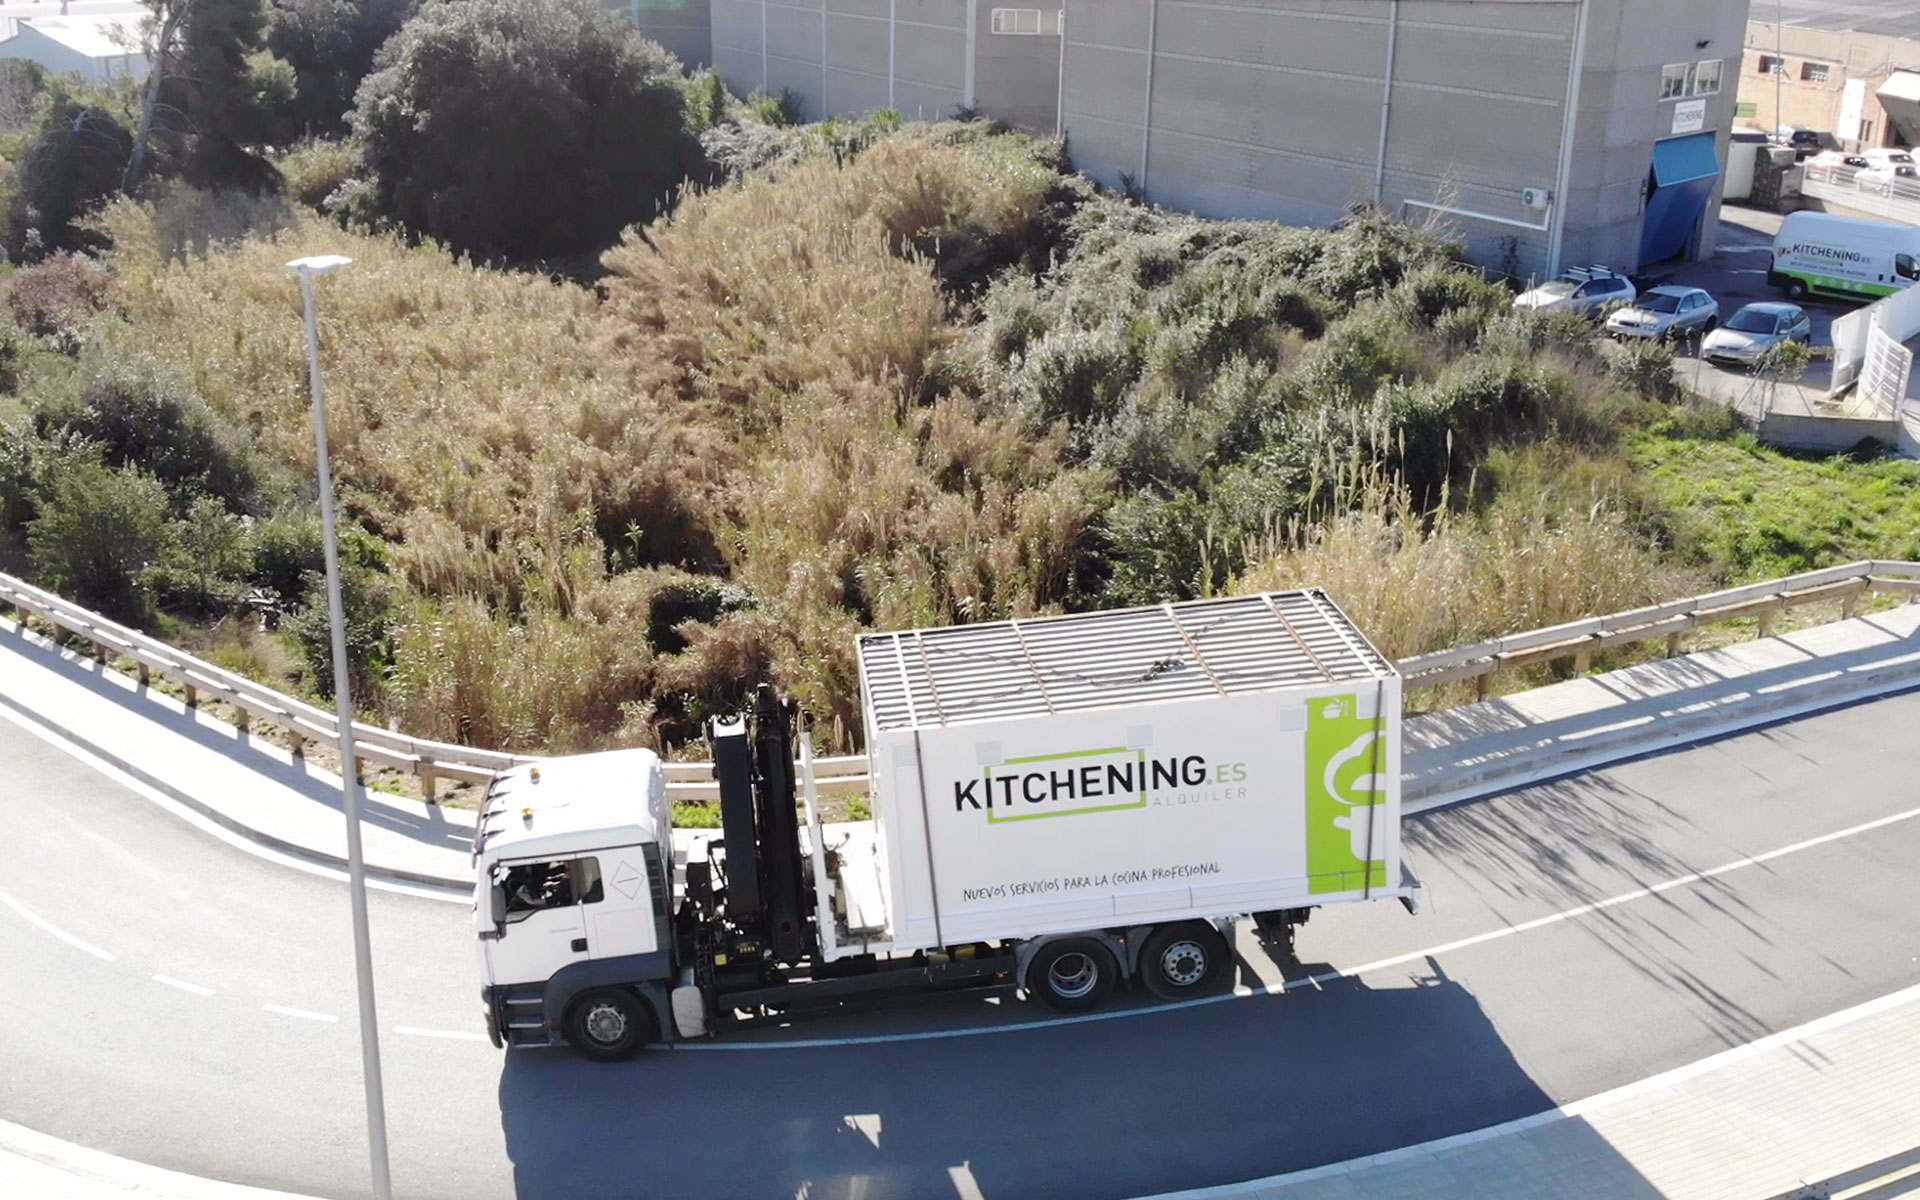 camion-kitchening-drone